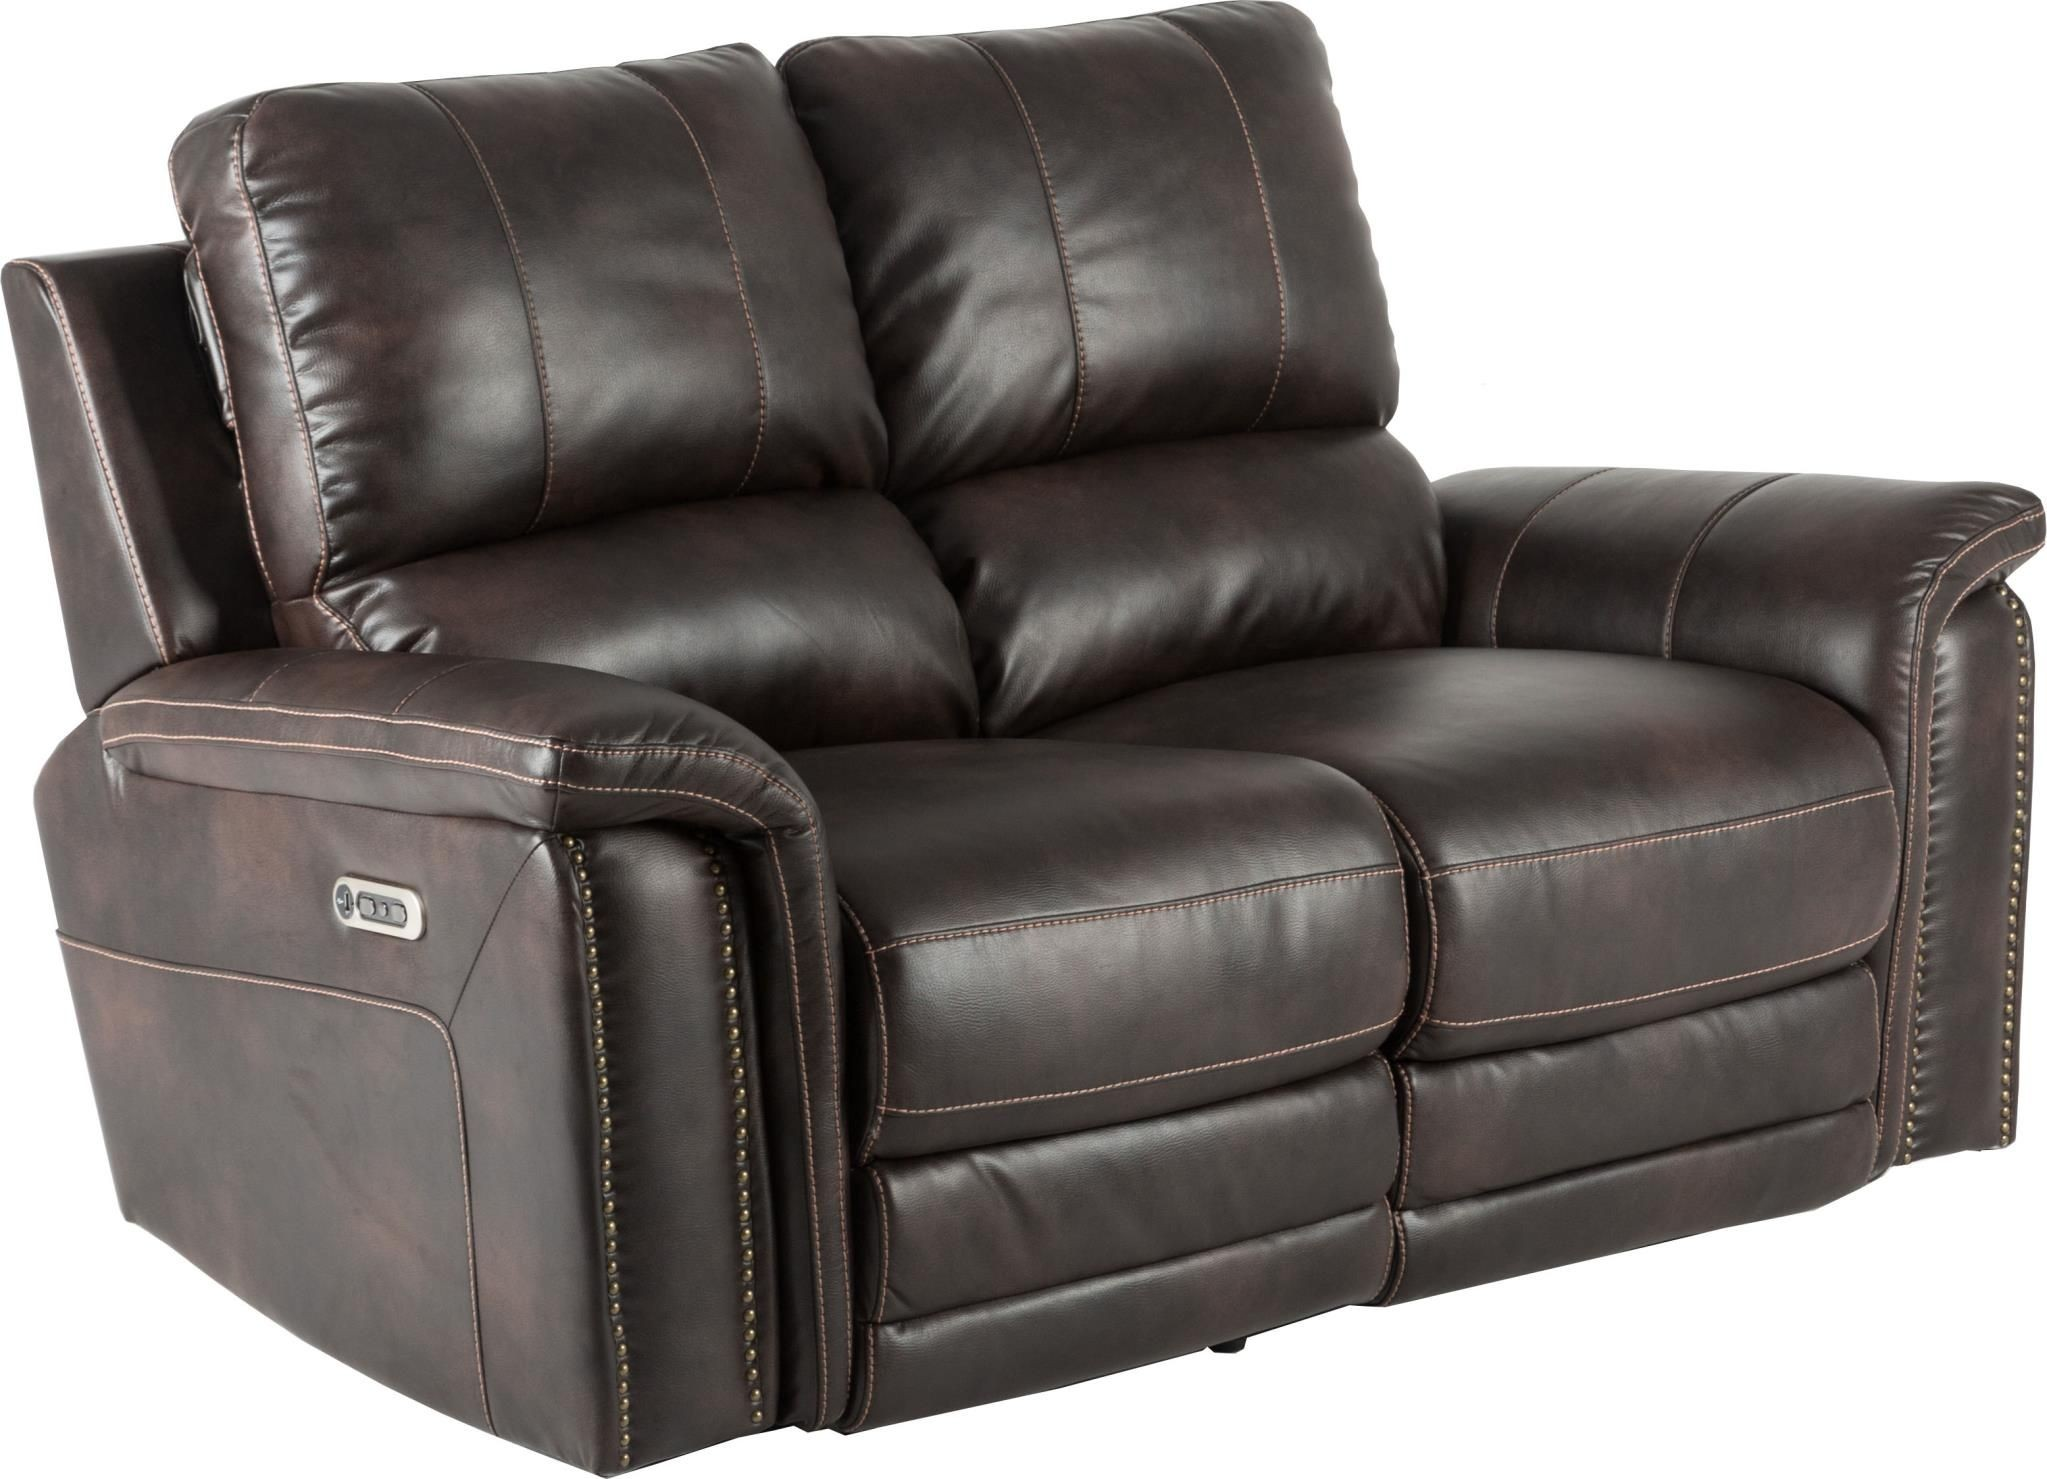 Belize Cafe Dual Power Reclining Loveseat From Parker Living Coleman Furniture